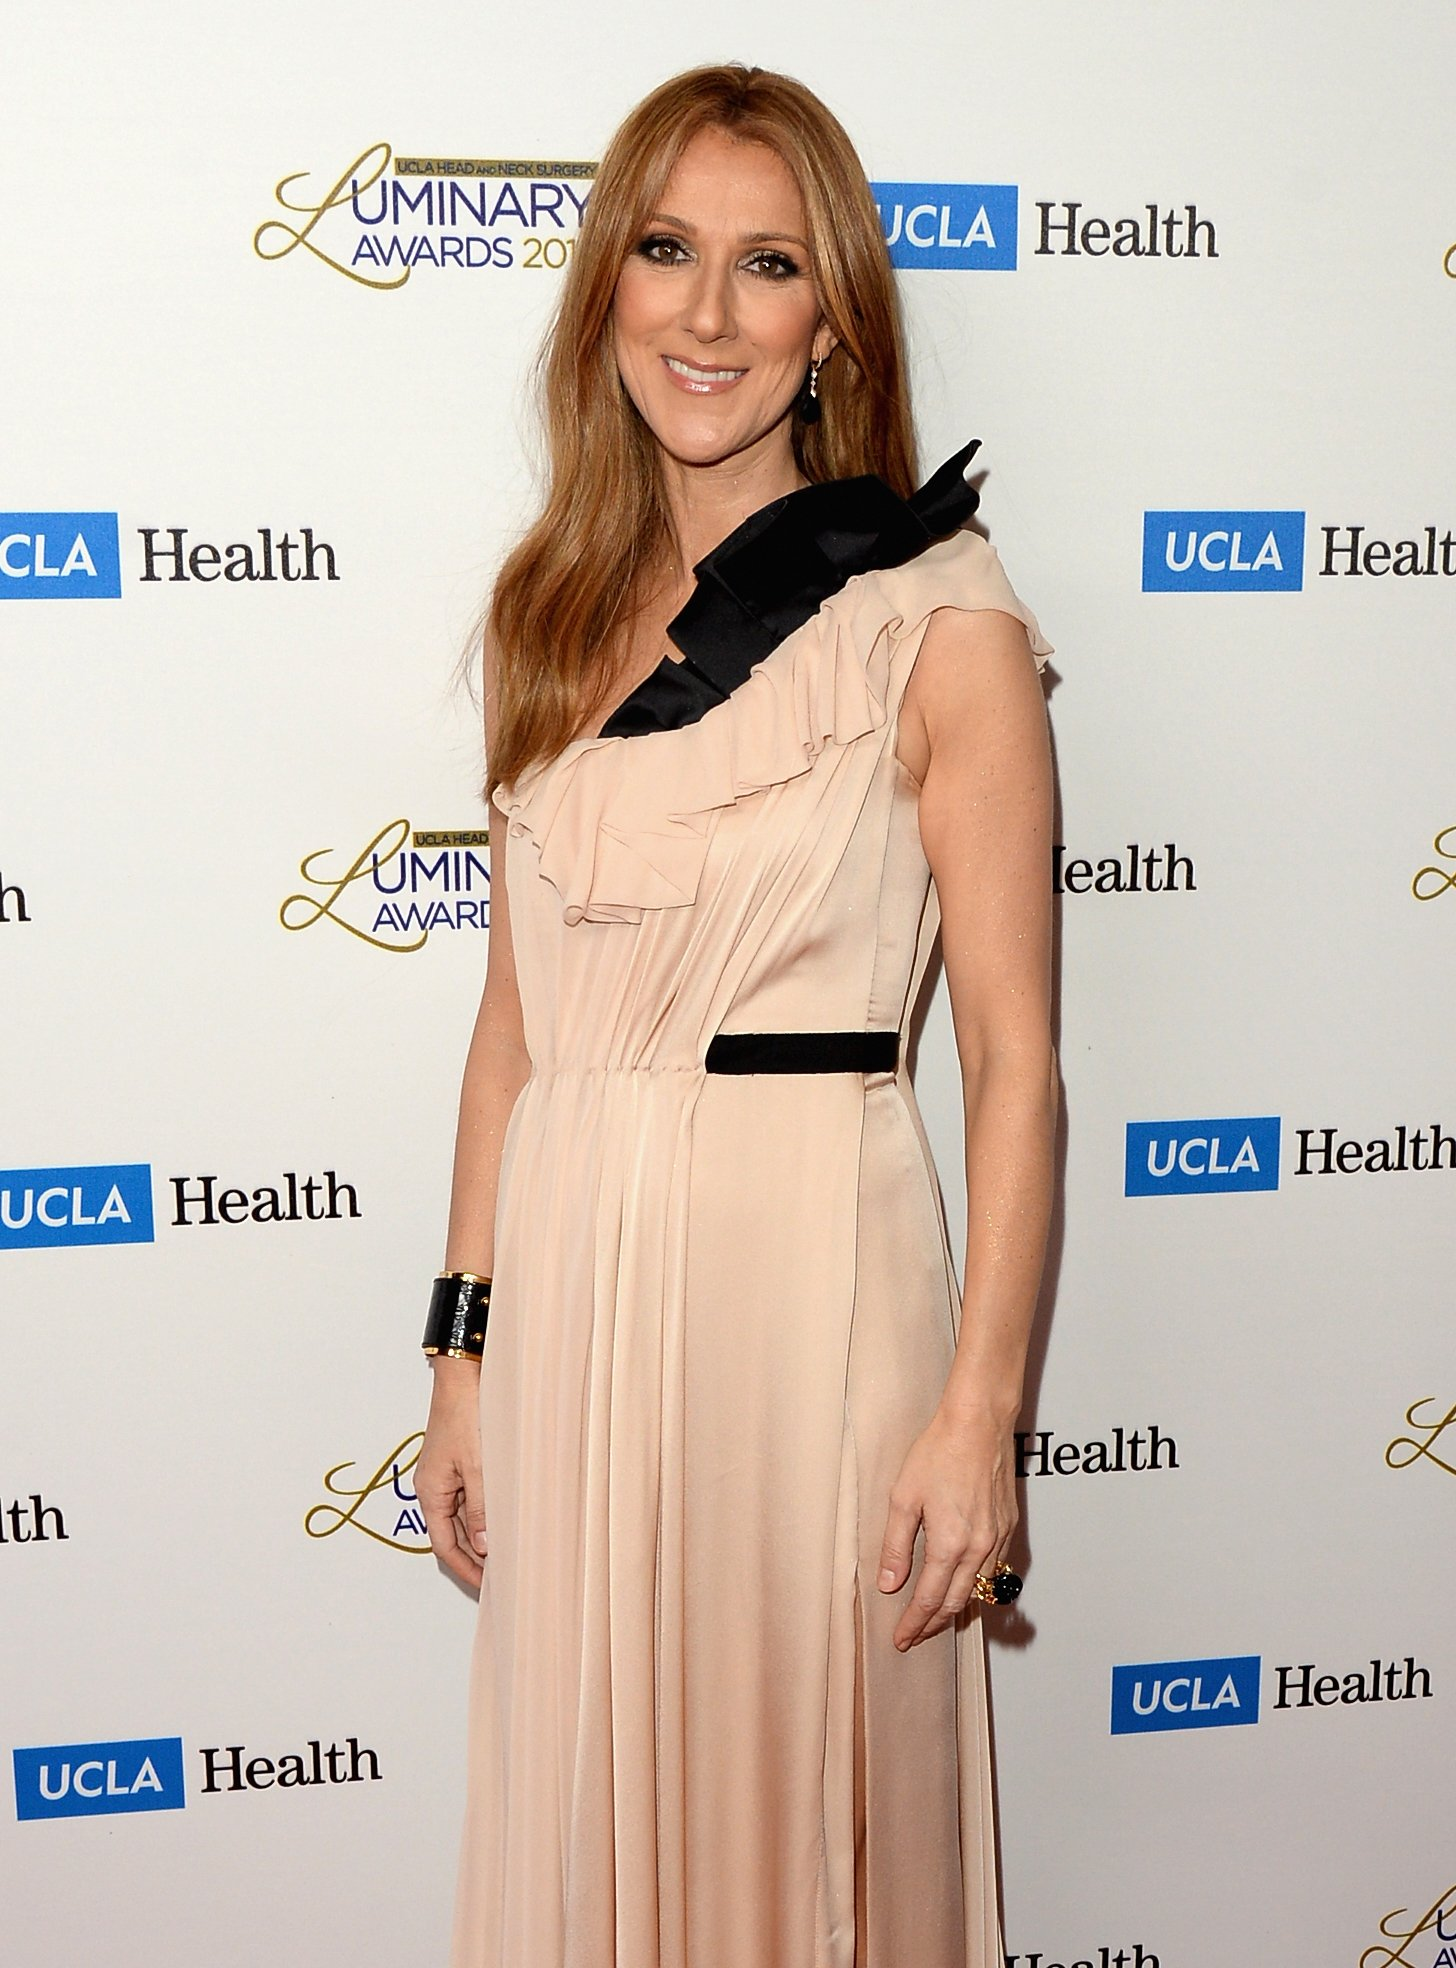 Celine Dion attends the UCLA Head and Neck Surgery Luminary Awards at the Beverly Wilshire Four Seasons Hotel on January 22, 2014, in Beverly Hills, California. | Source: Getty Images.